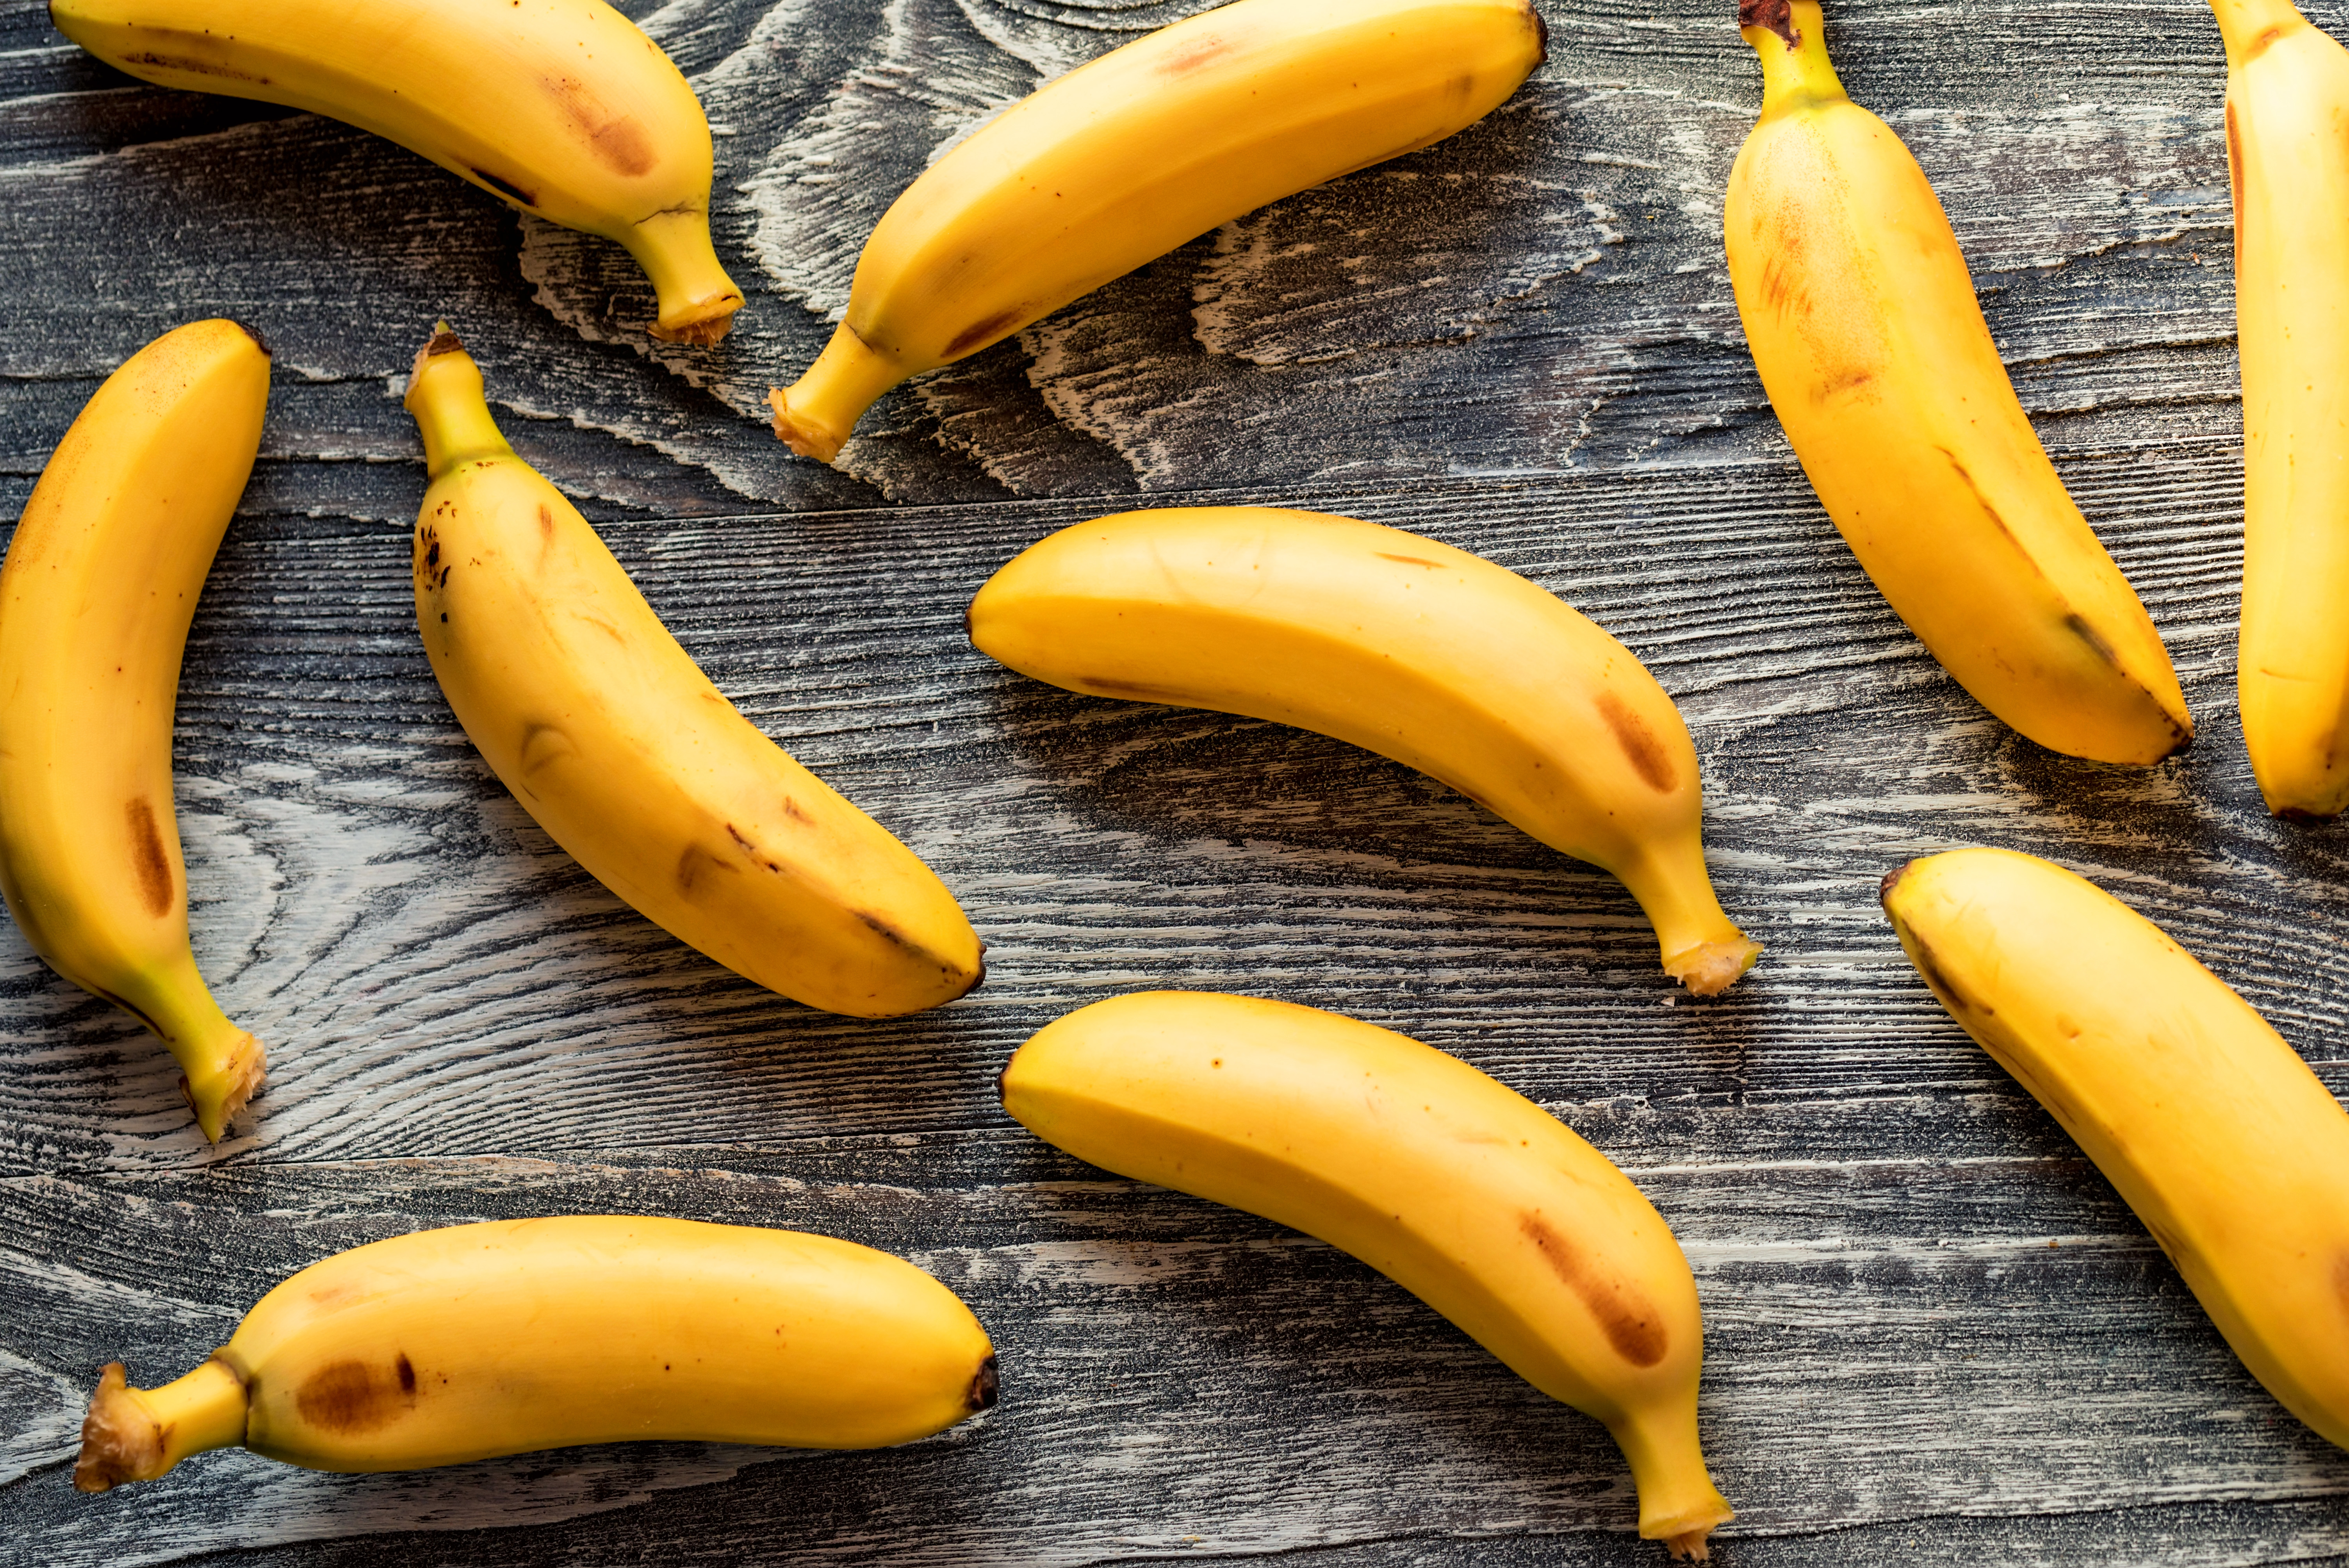 bunch-of-bananas-on-wooden-background-F94XJY6